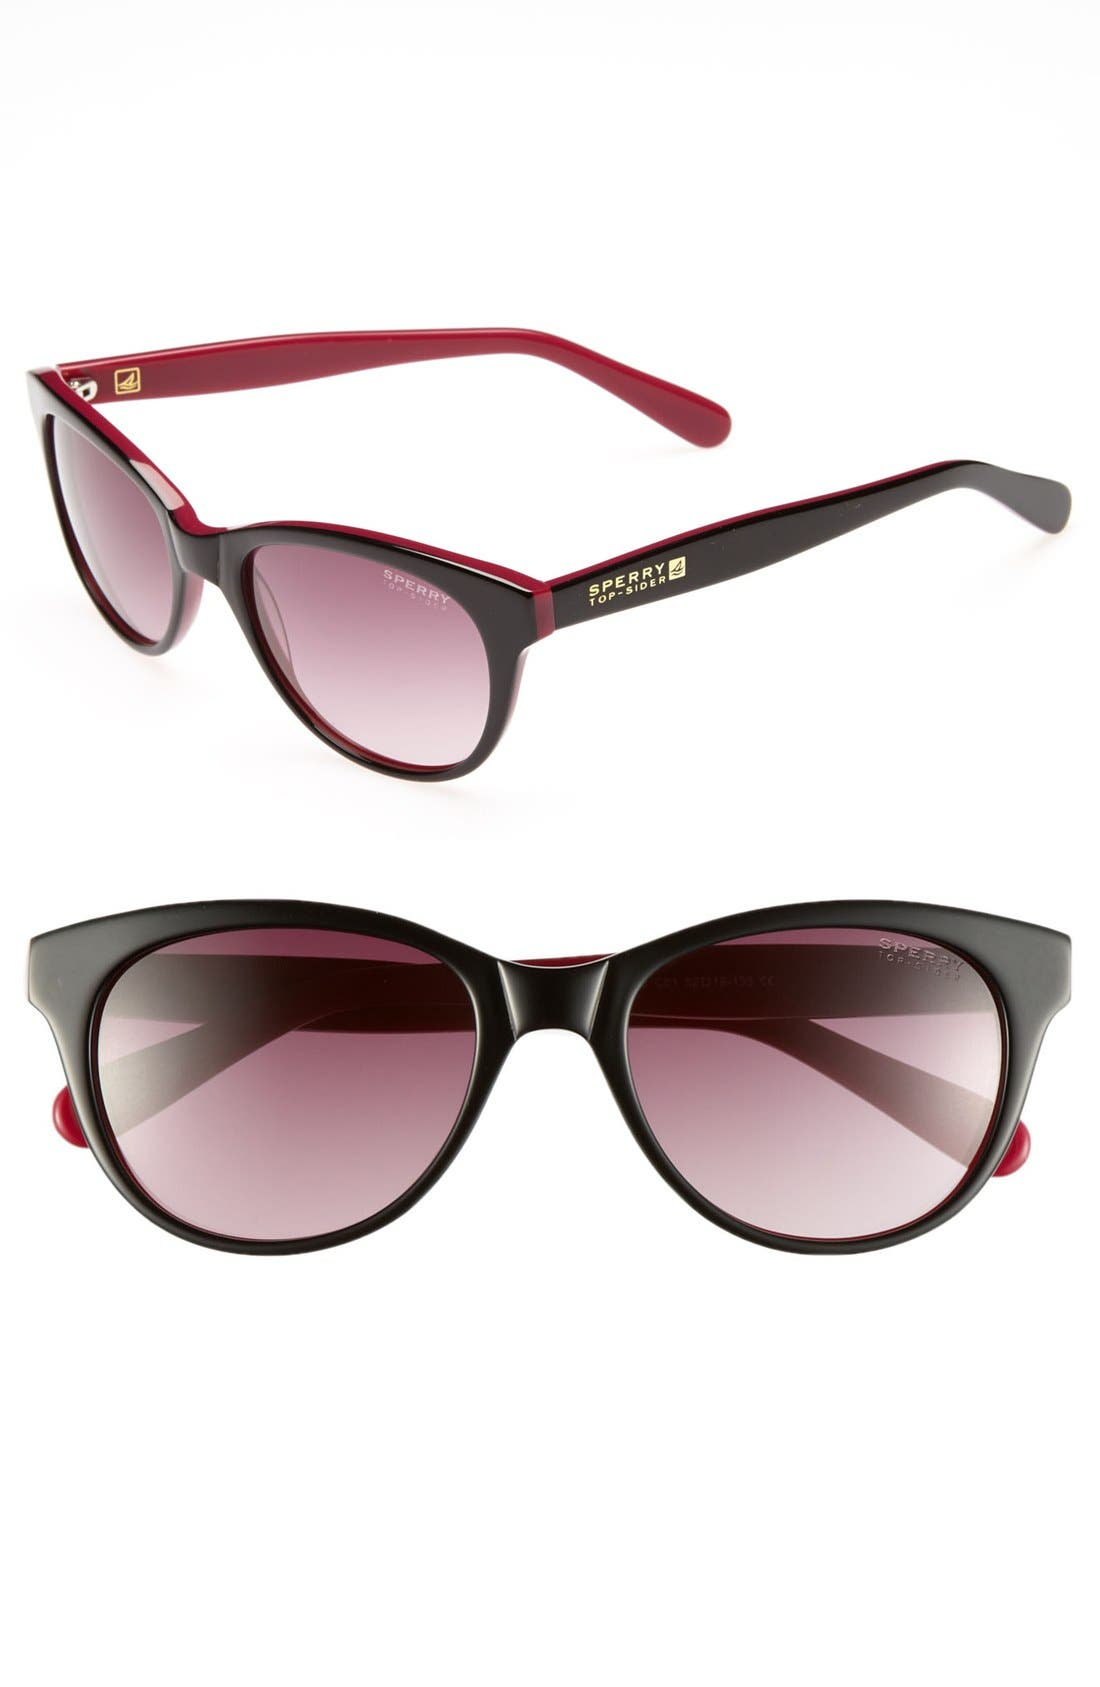 Main Image - Sperry Top-Sider® 'Hatteras' 52mm Sunglasses (Online Only)